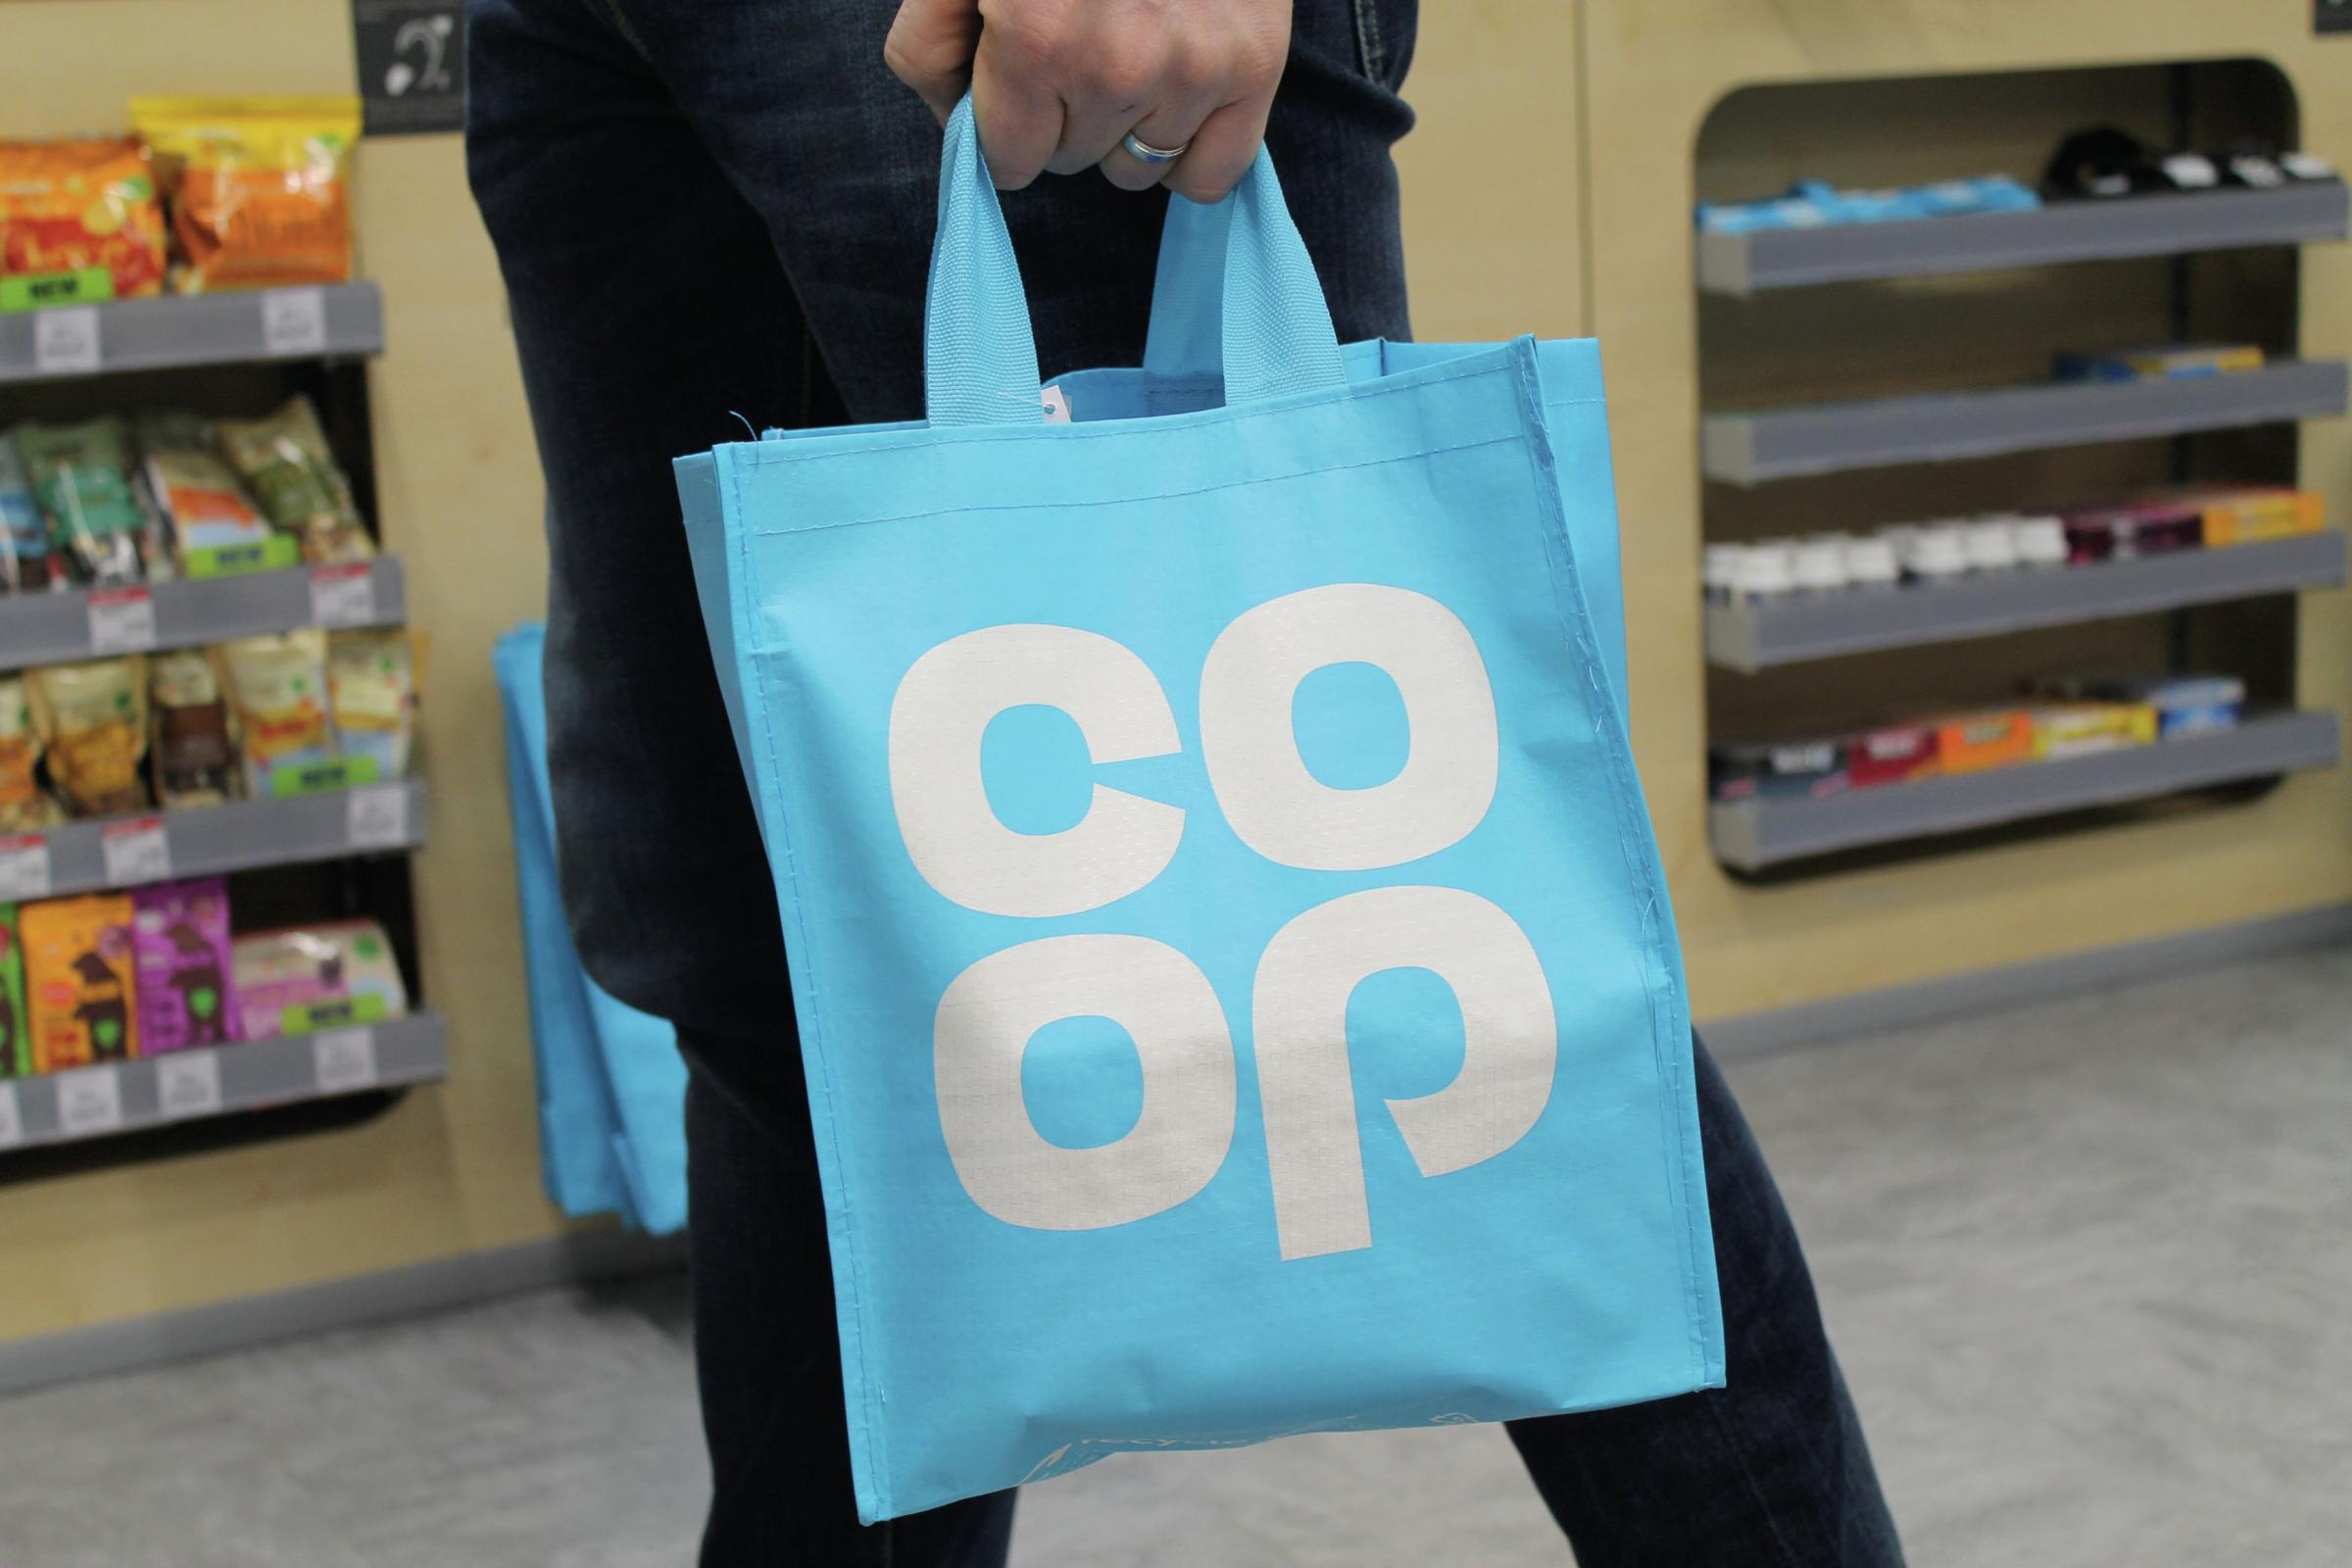 PLANS: The Co-op plans to open 100 new food stores in 2018, creating around 1,600 jobs